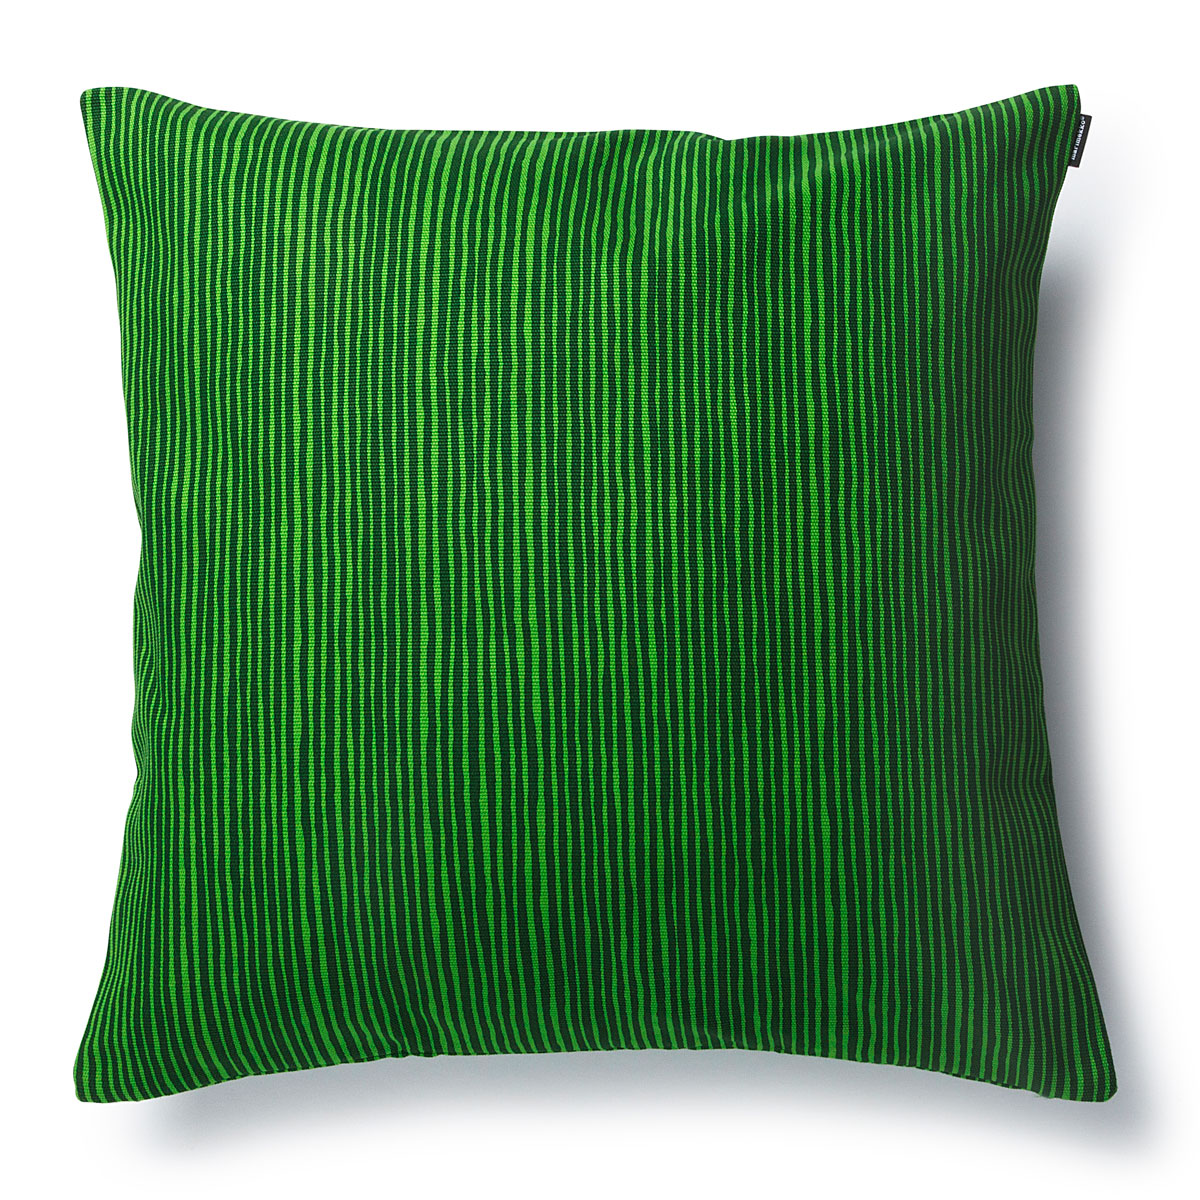 bg plain ozcushions small throw cushions works bangladesh people green by pillows beautiful pillow throwpillow